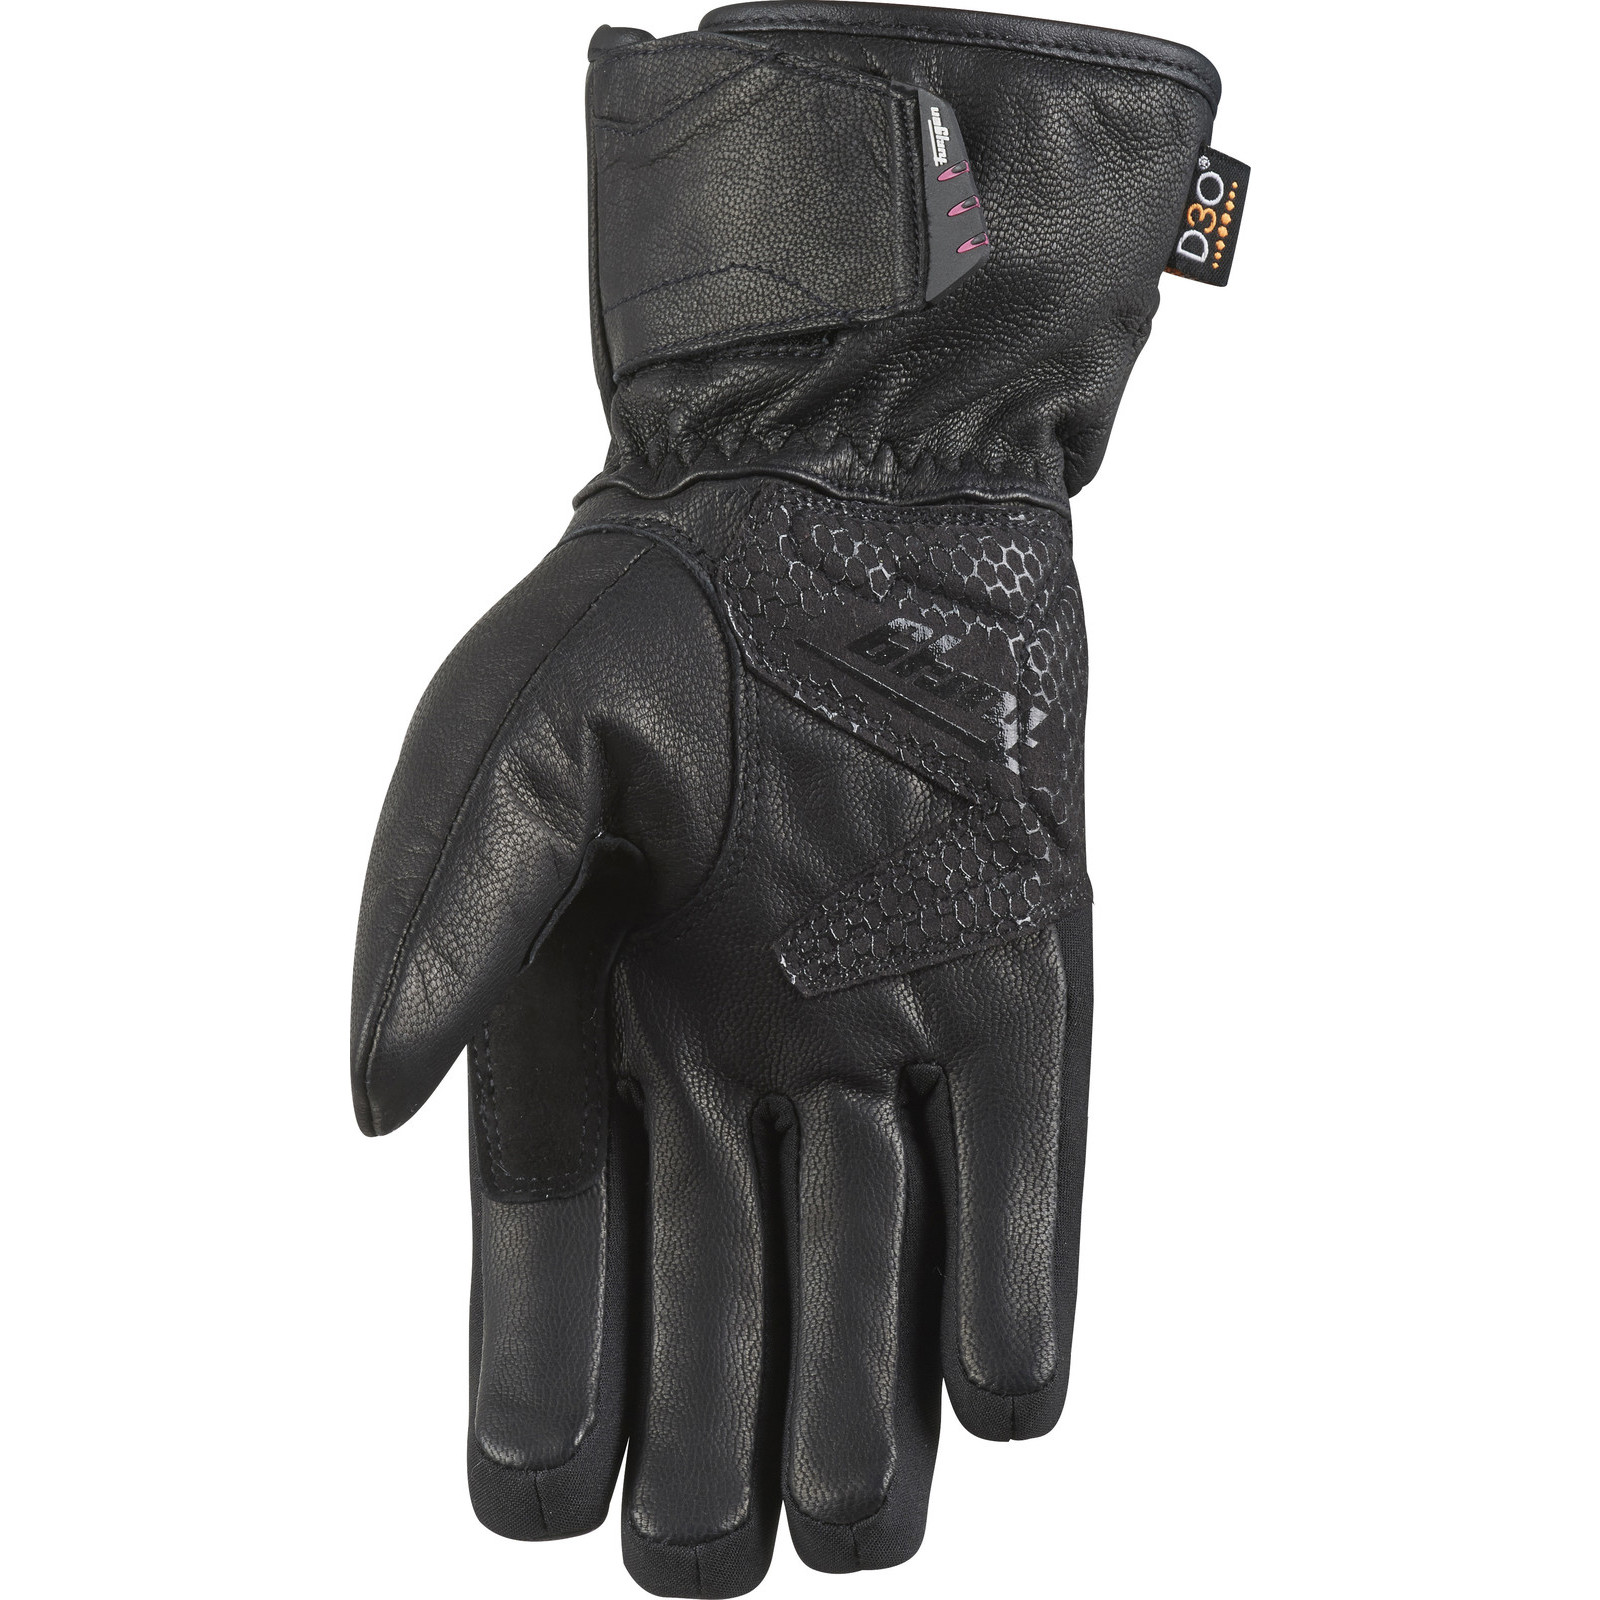 Motorcycle gloves thinsulate - Furygan Land Lady D3o Evo Motorcycle Gloves Womens